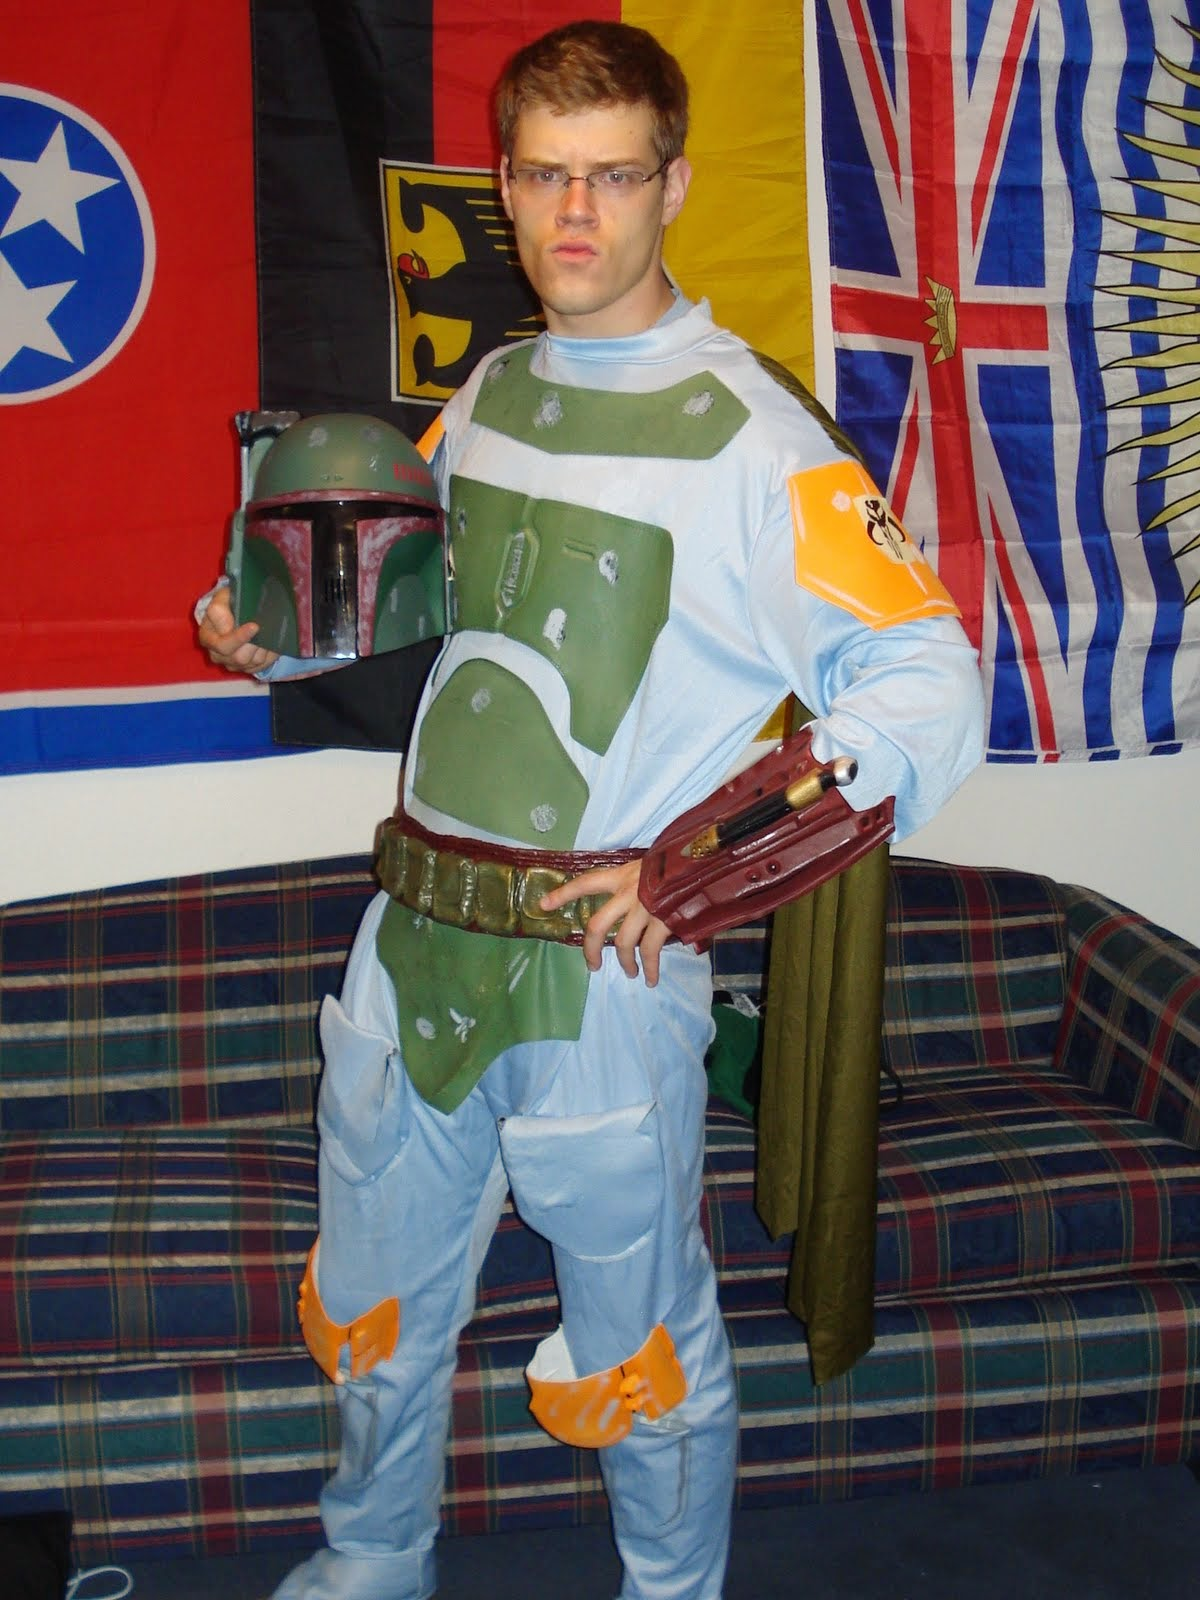 ... and I'm Boba Fett on the weekends